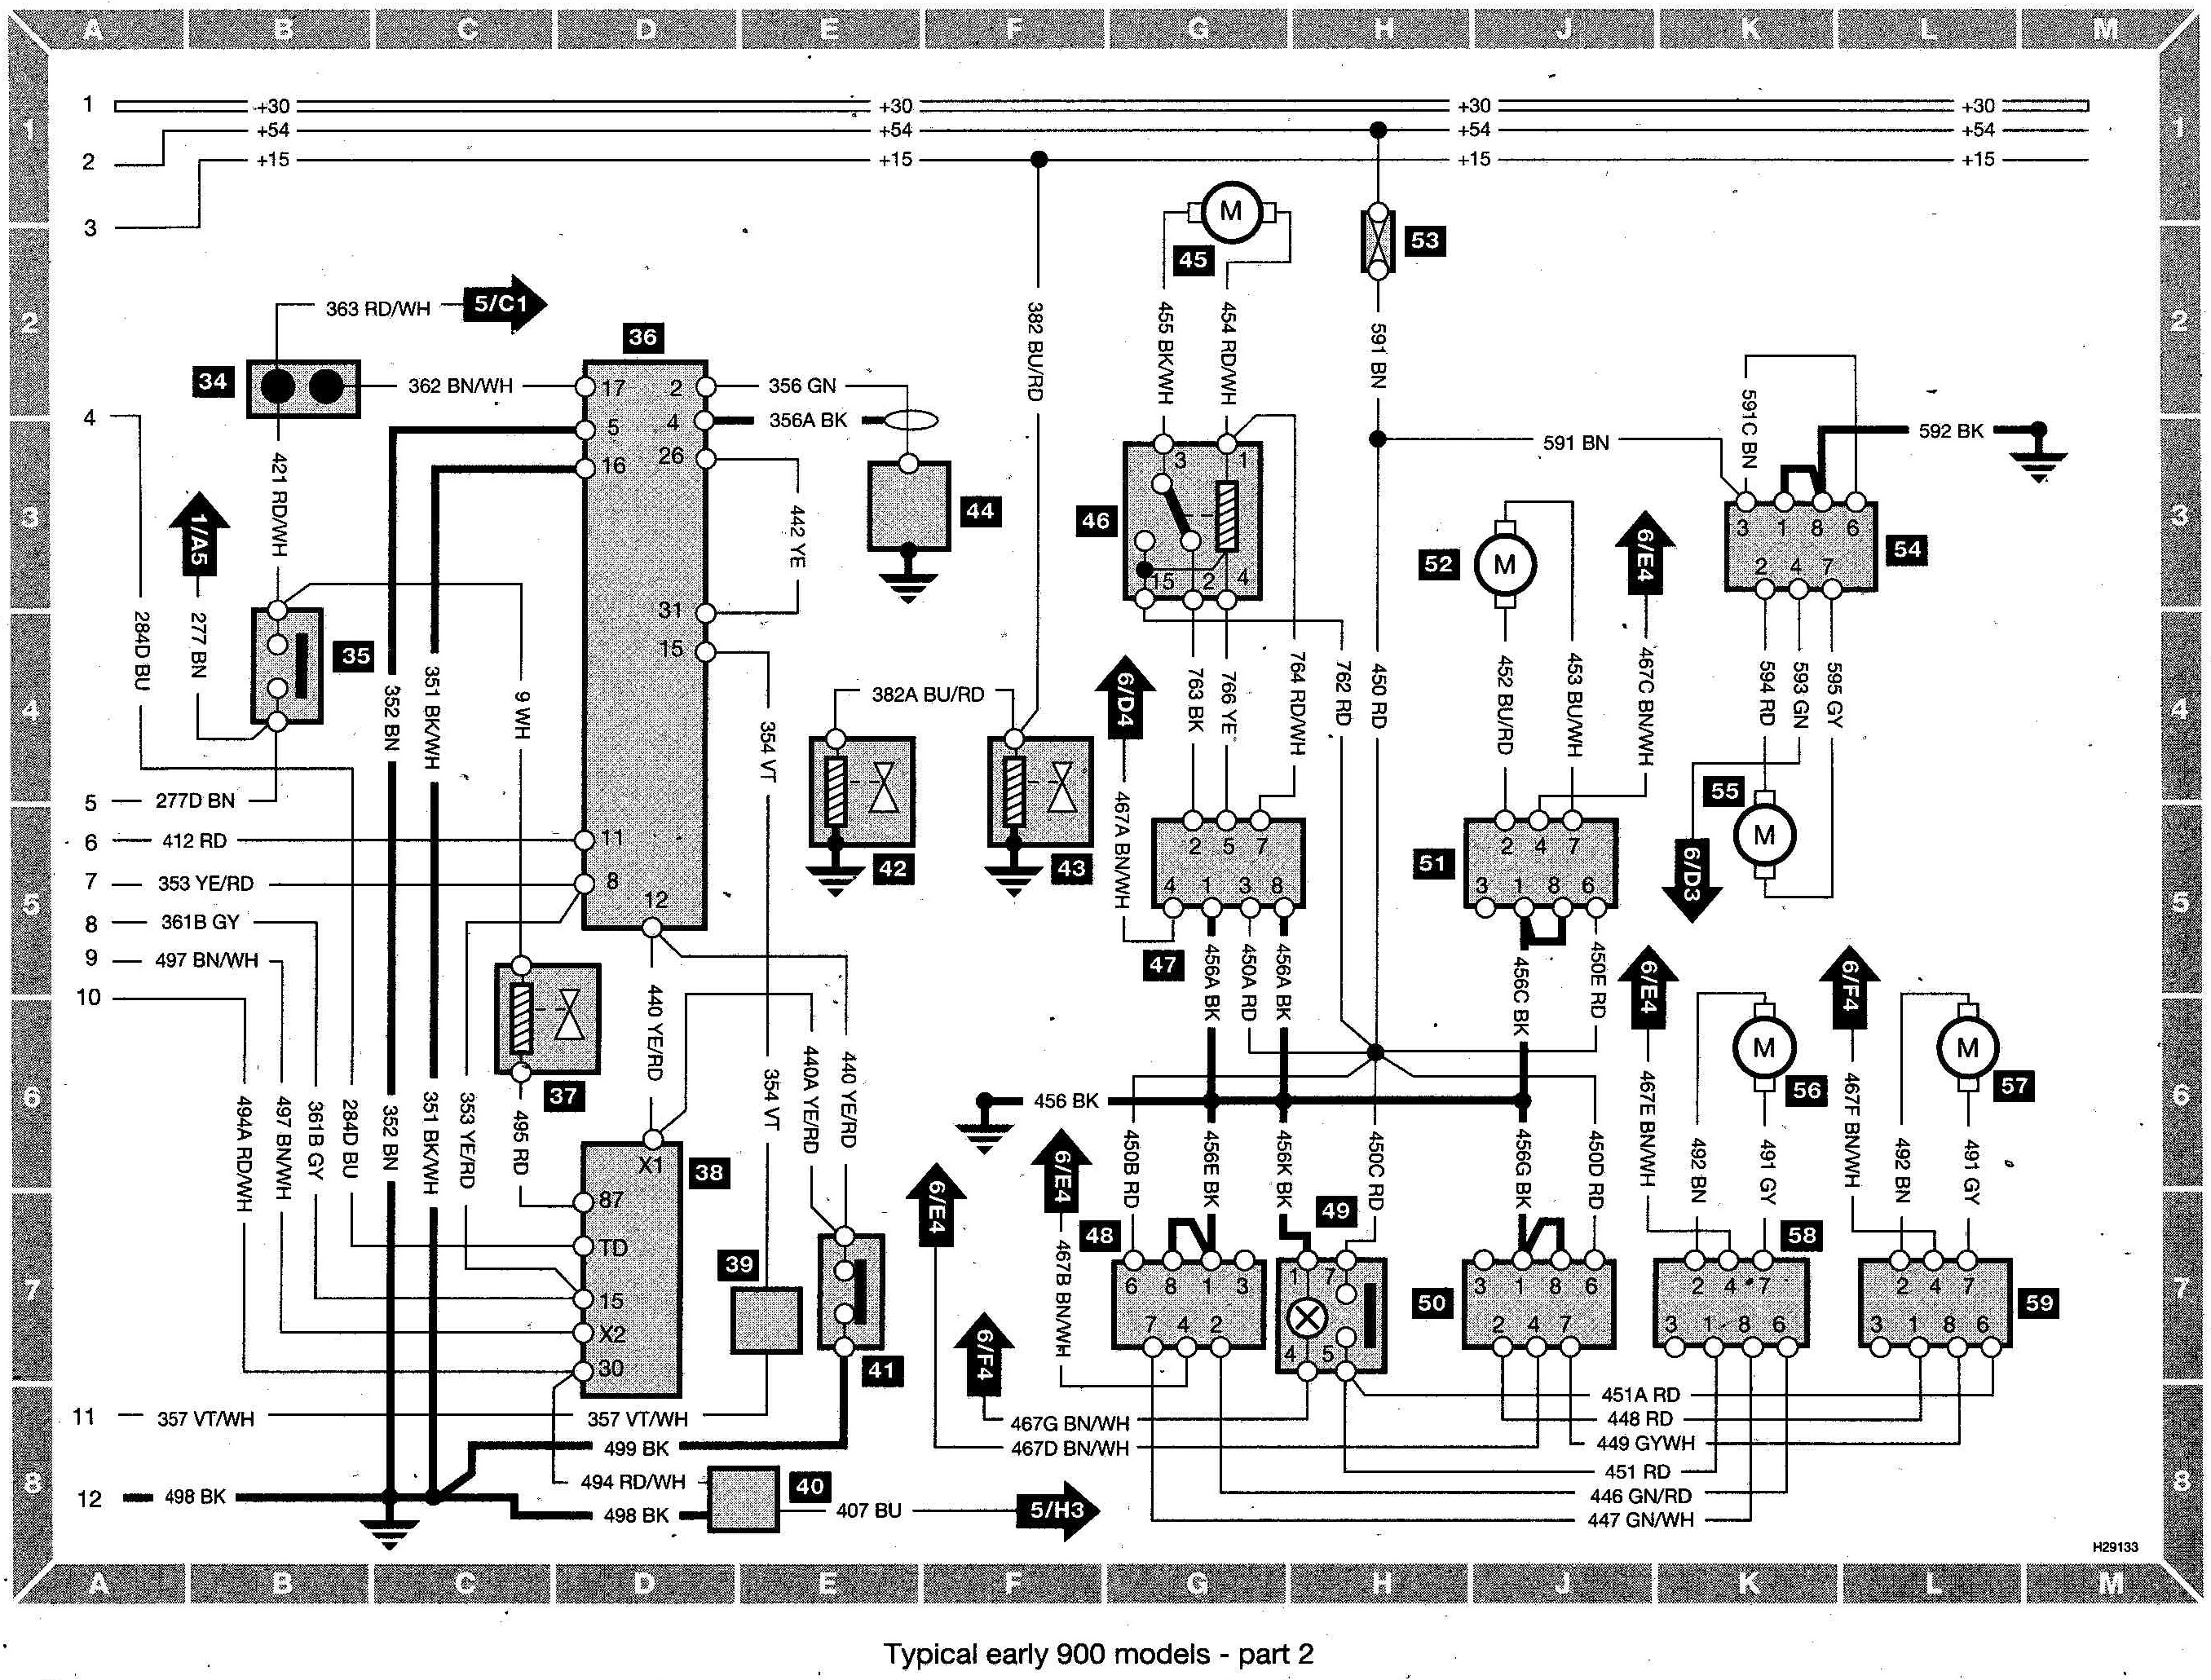 index of saab saab 900 wiring diagram early models rh j ware no ip com Saab Headlights Not Working saab 93 headlight diagram